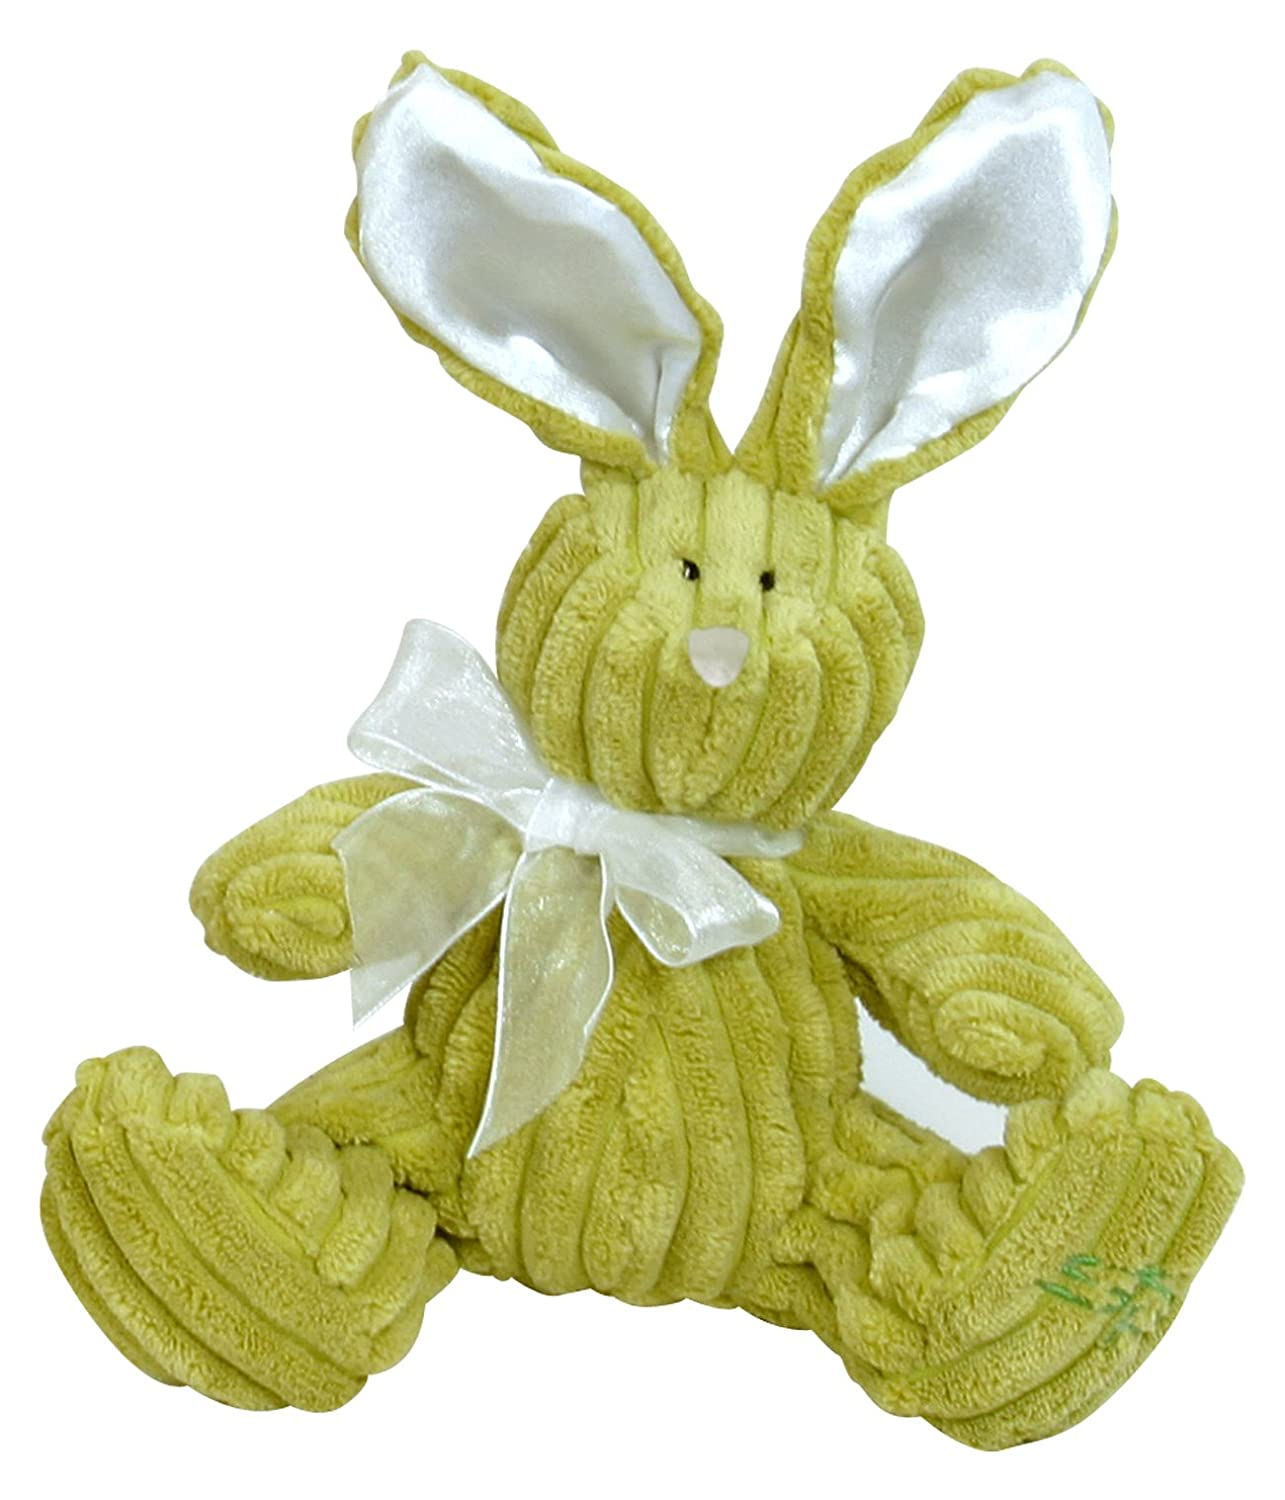 Discontinued by Manufacturer 6 Lime Stephan Baby Ultra Soft Ribbed Plush Floppy Wabbit